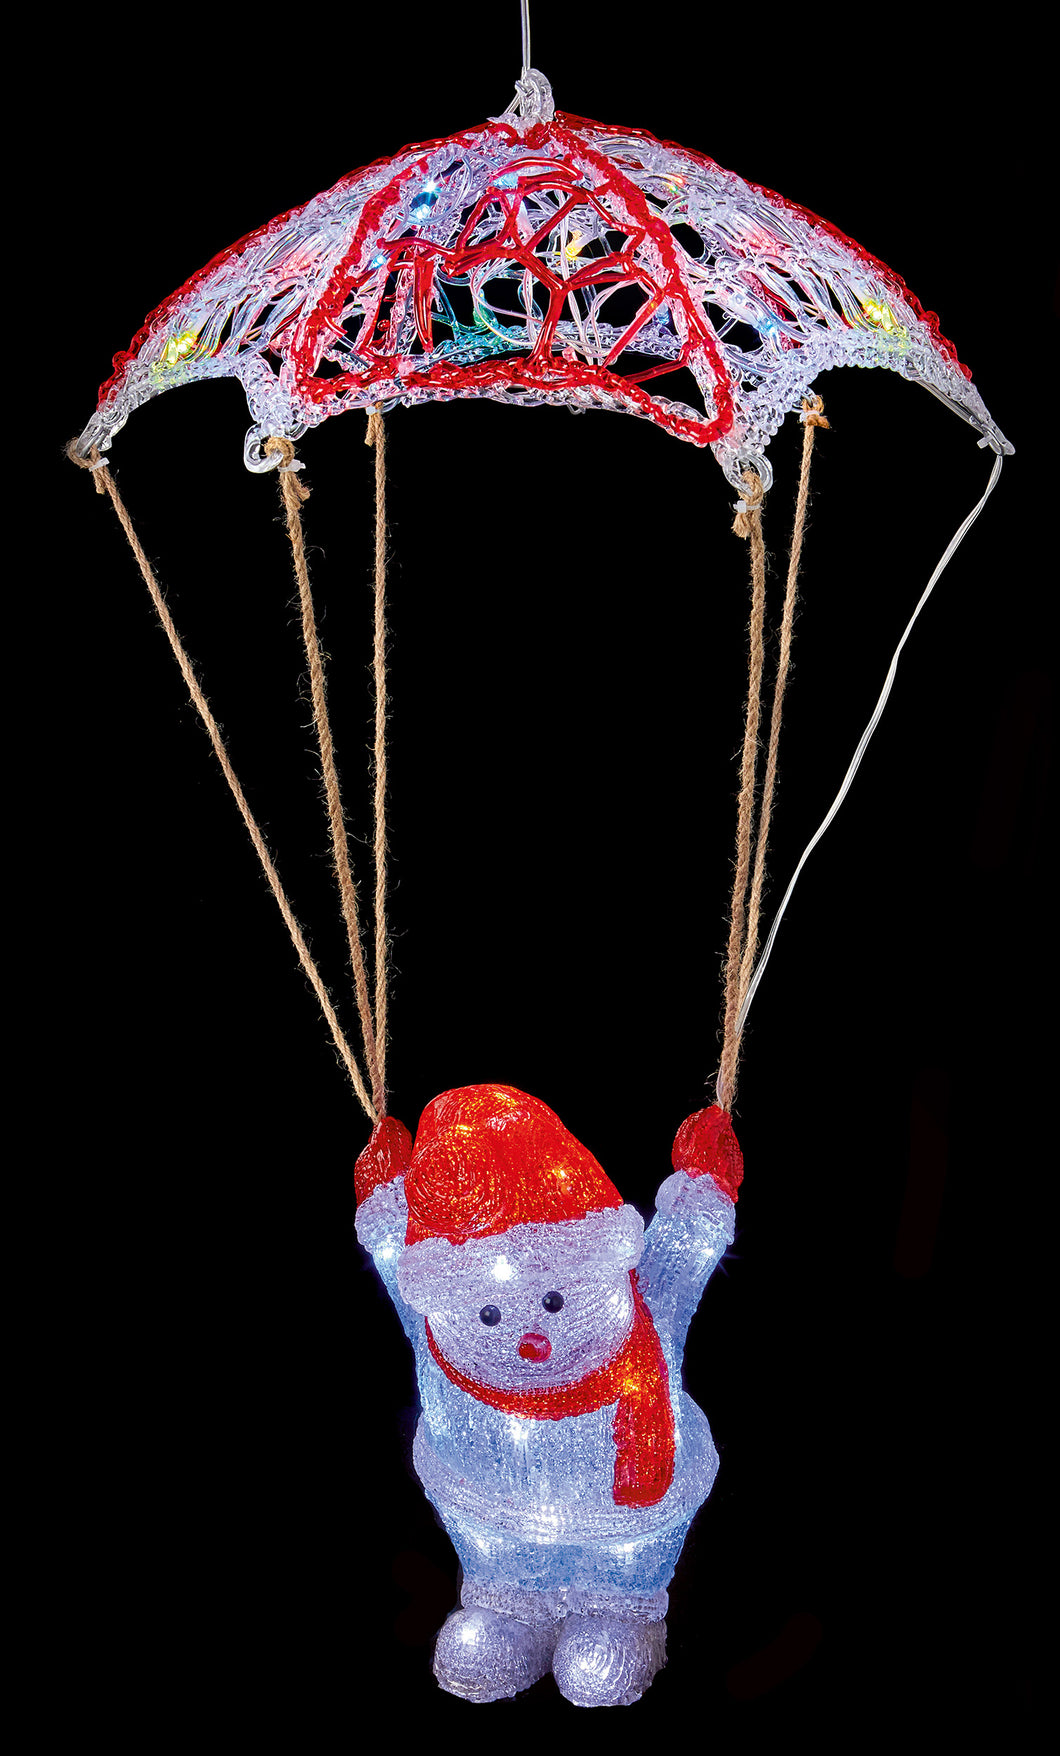 Premier LED Acrylic Parachute Snowman - 70cm  At Beattys Loughrea Galway. Www.beattys.ie